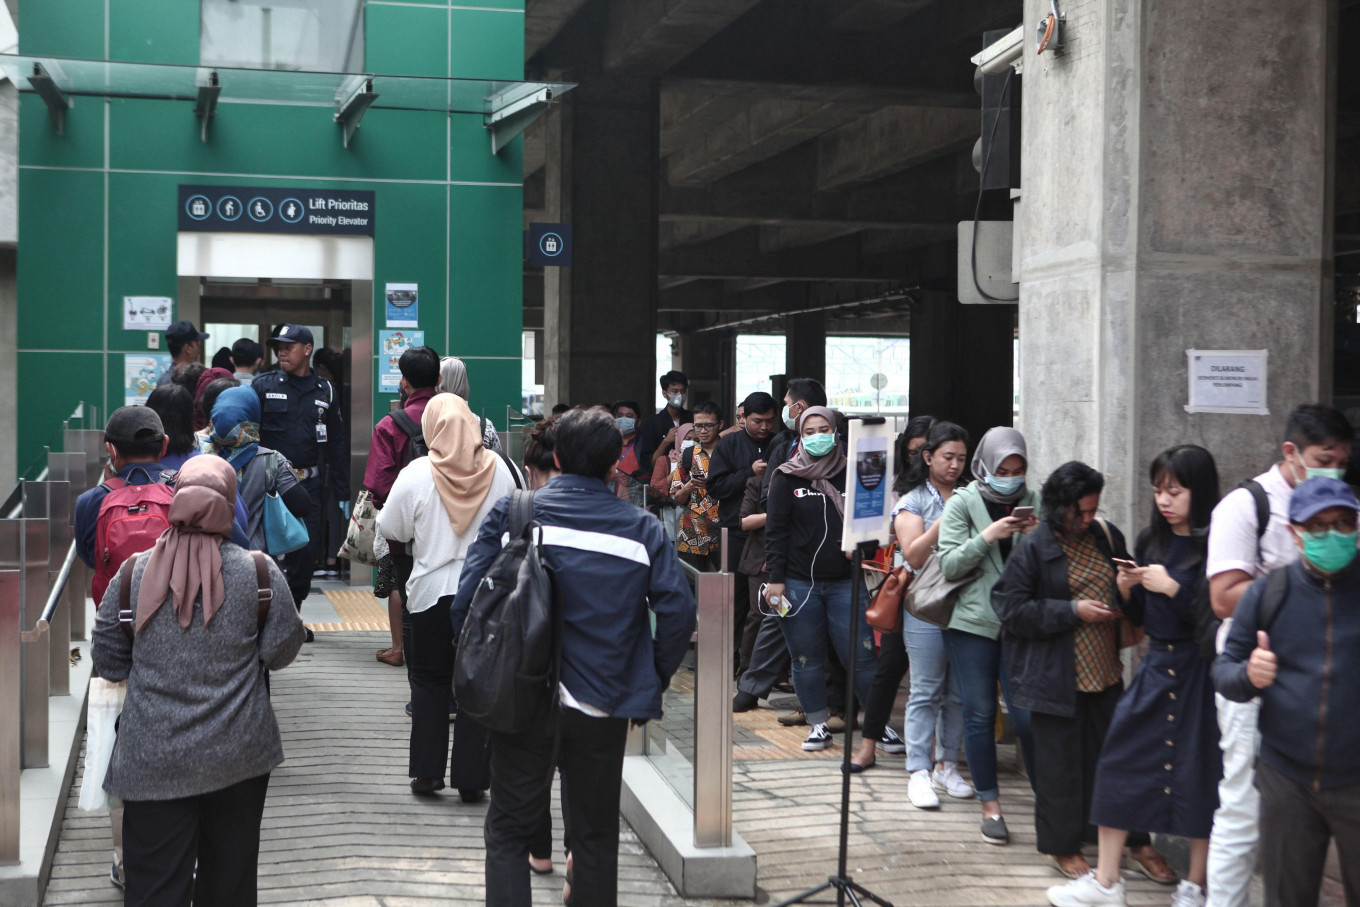 COVID-19: City-wide transport restrictions cause buildup at Transjakarta, MRT stations